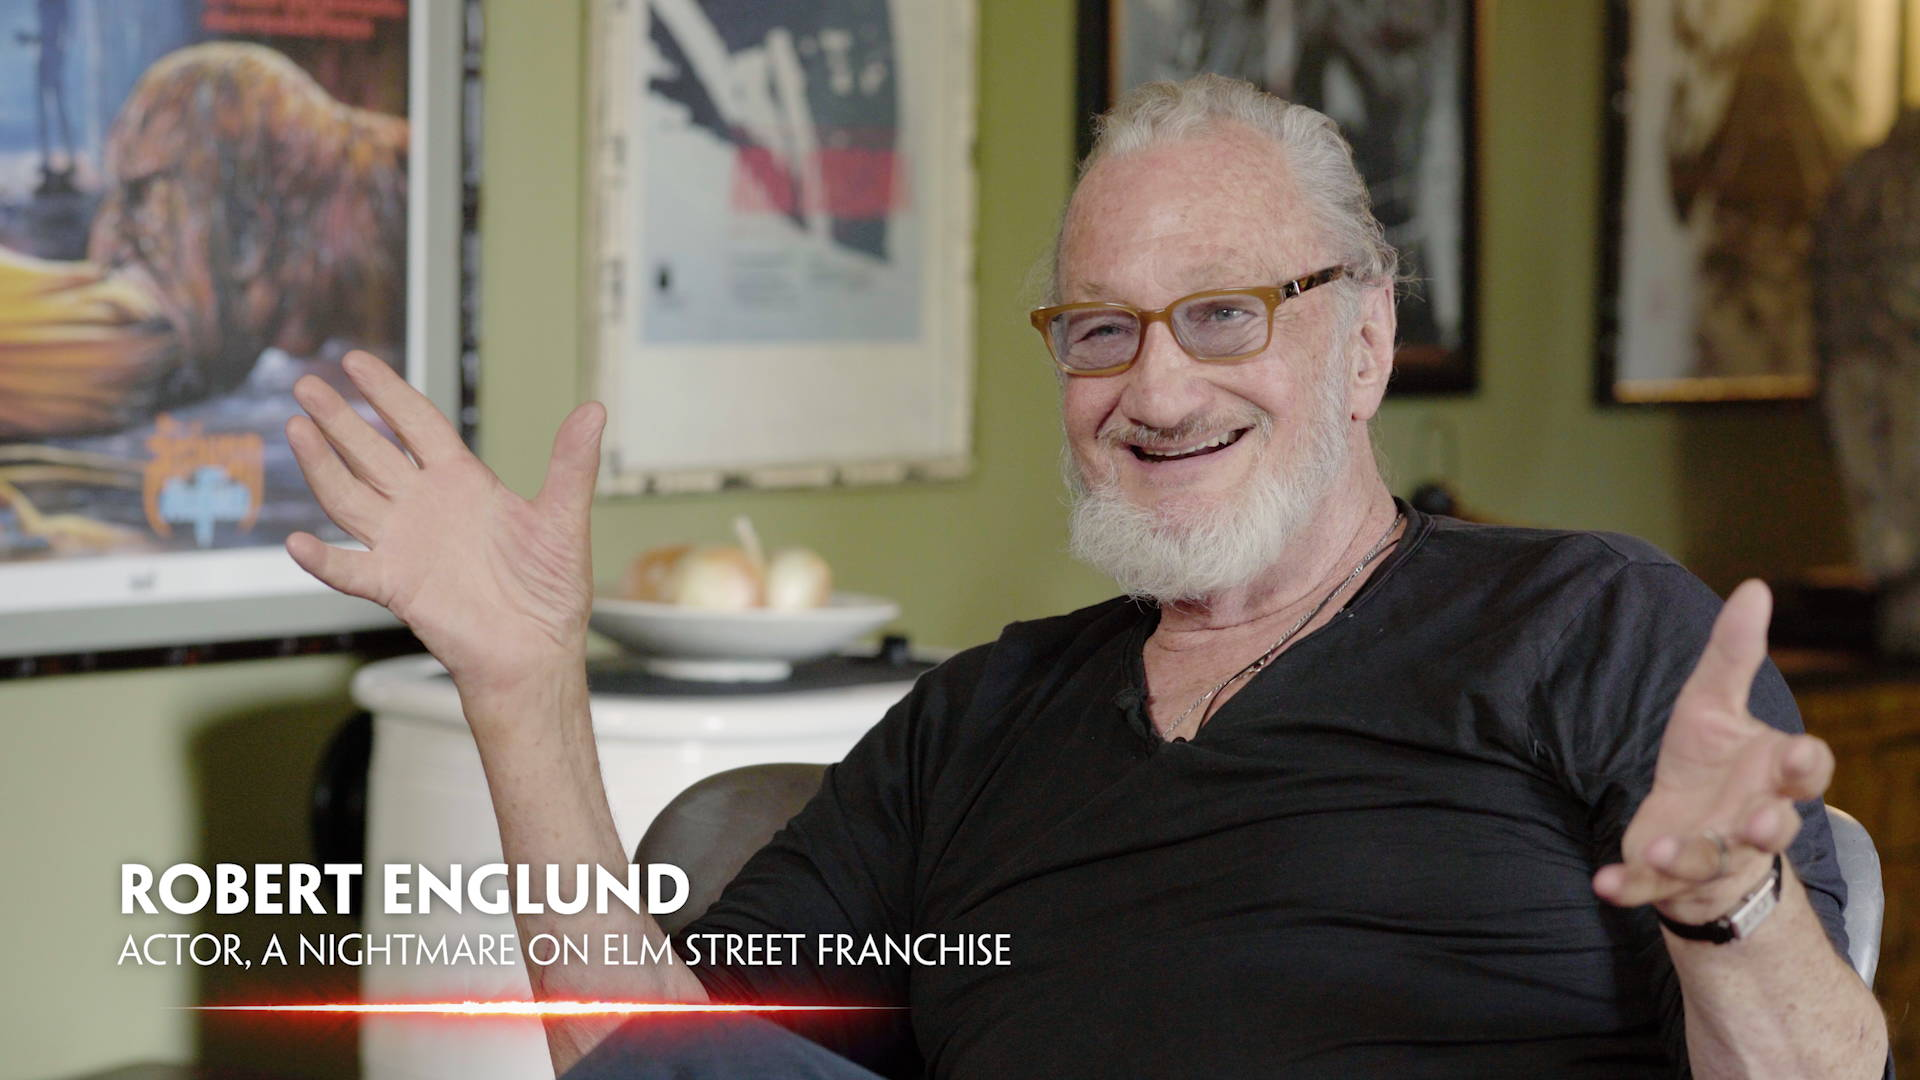 In Search of Darkness Part II: Robert Englund